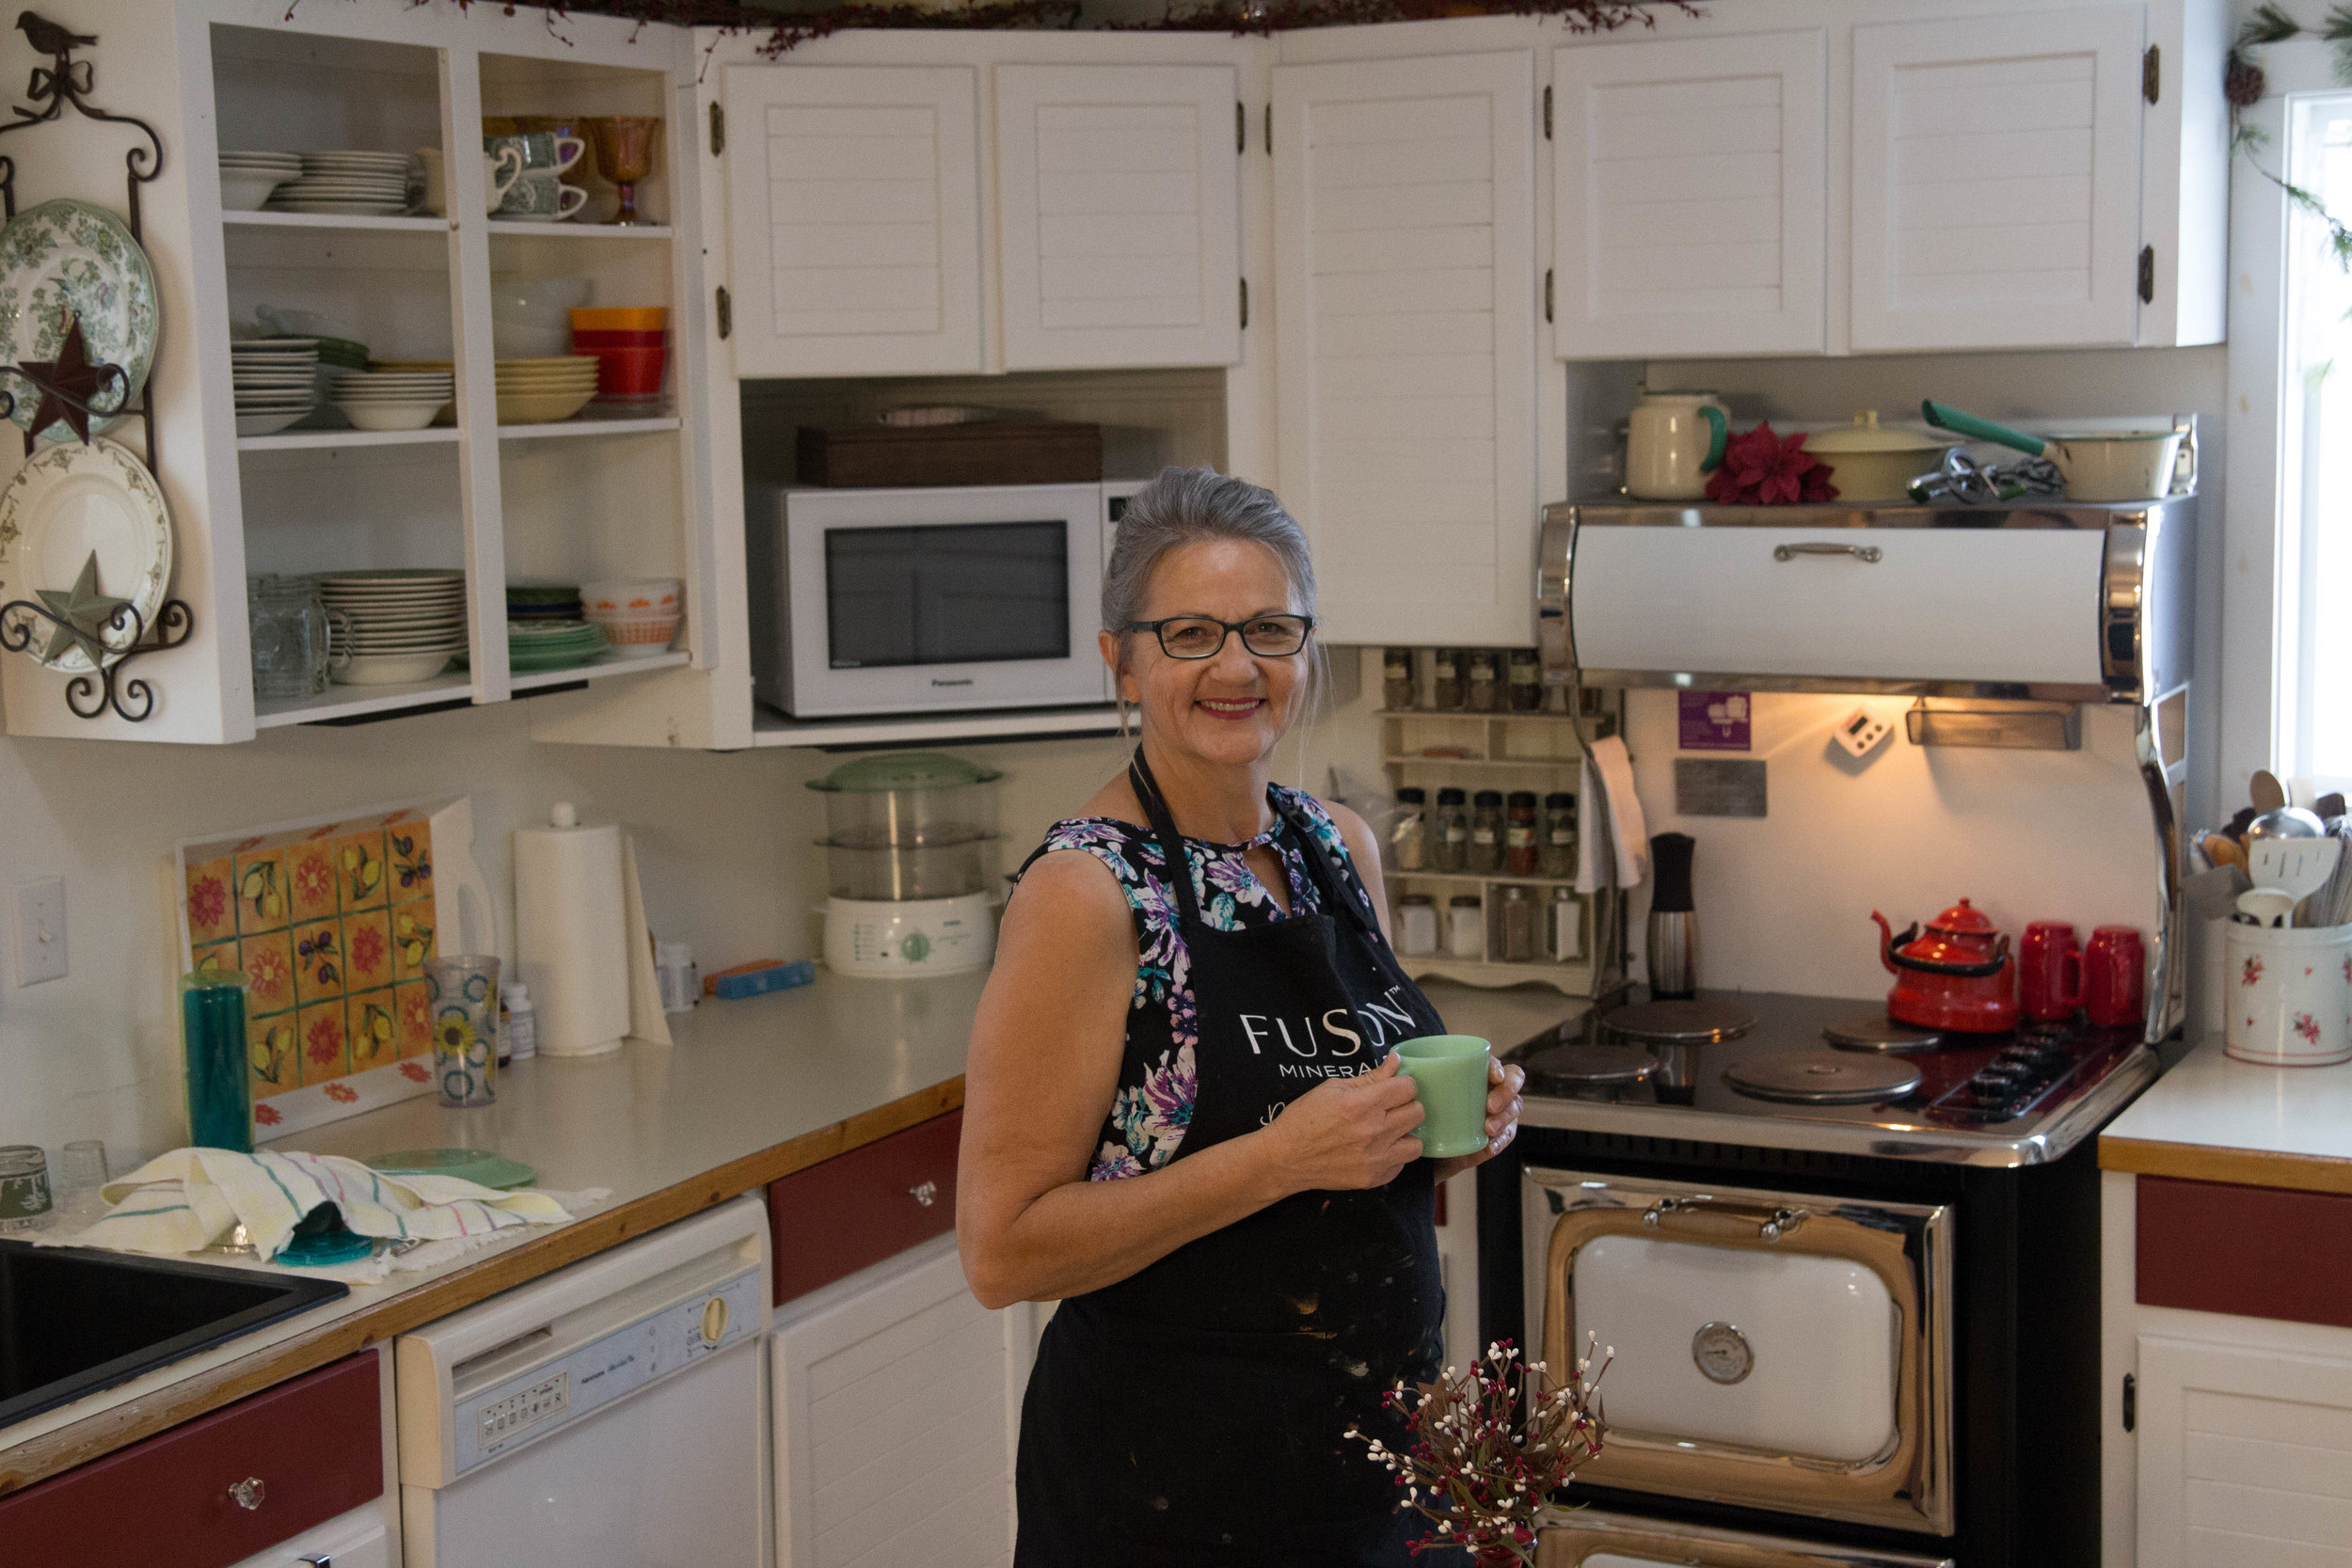 Suzanne of House of Hope in her vintage kitchen in Vanderhoof, BC